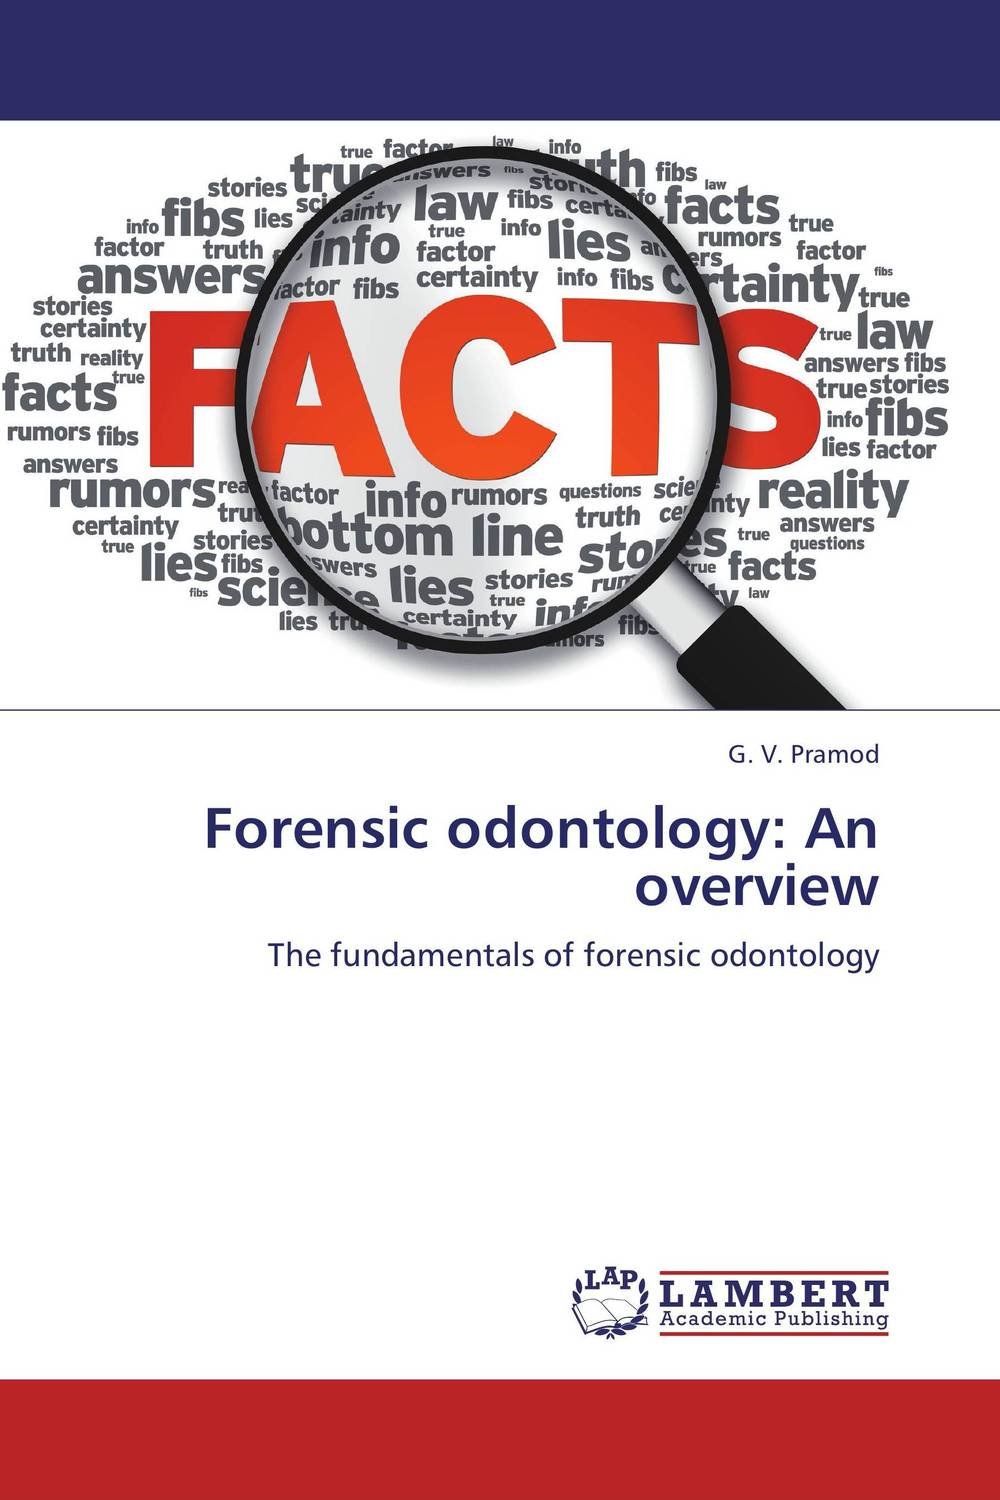 Forensic odontology: An overview yusuf cat stevens brisbane